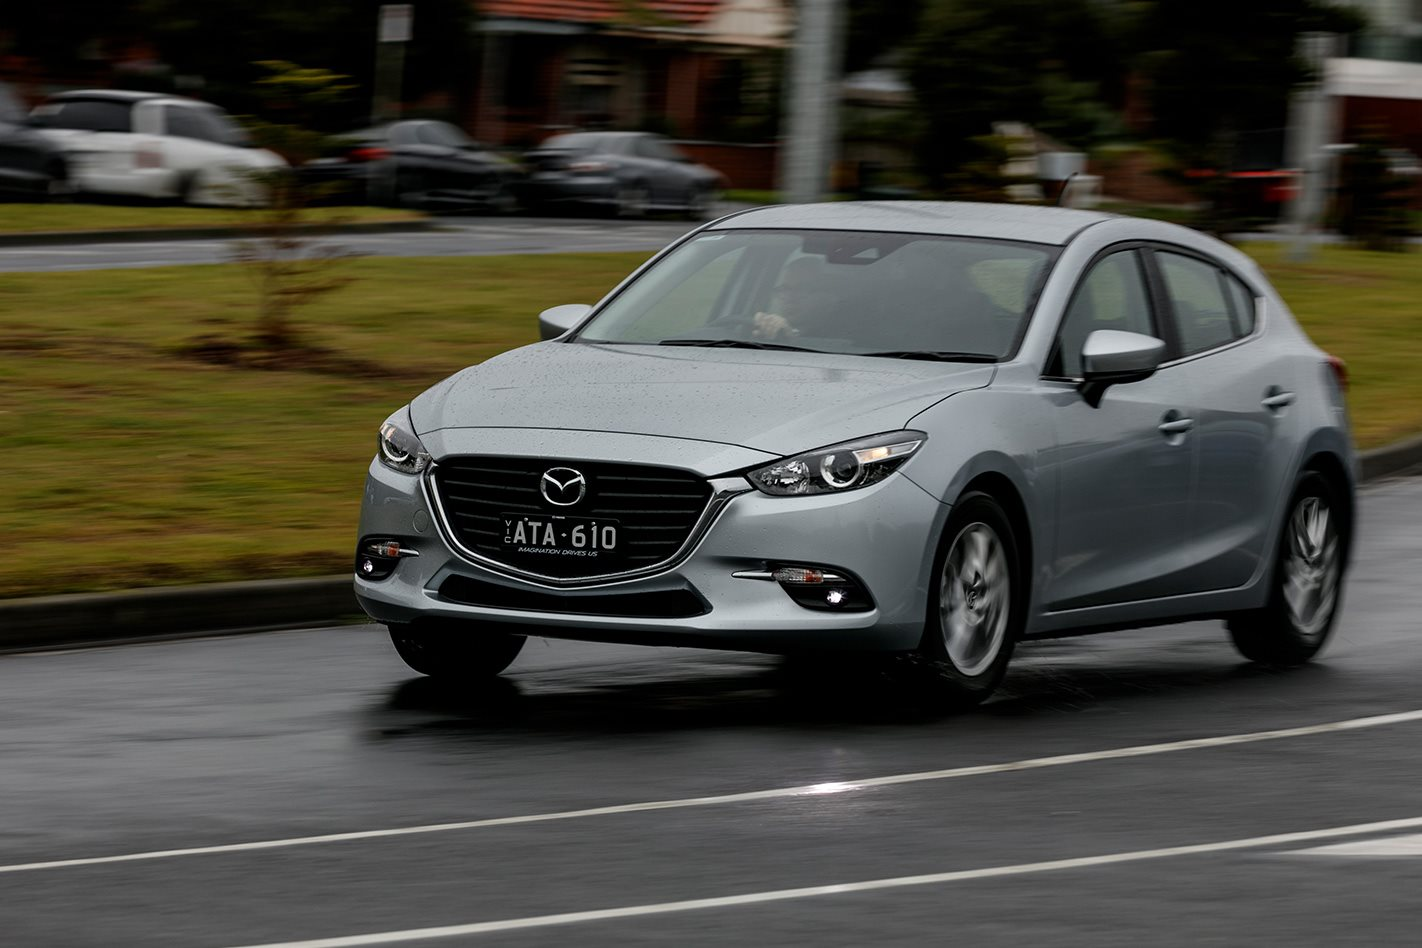 The Mazda 3 Is An Enjoyable Car To Drive, With Light But Engaging Steering  That Makes Easy Work Of Negotiating Suburban Streets And Bendy Country  Roads.